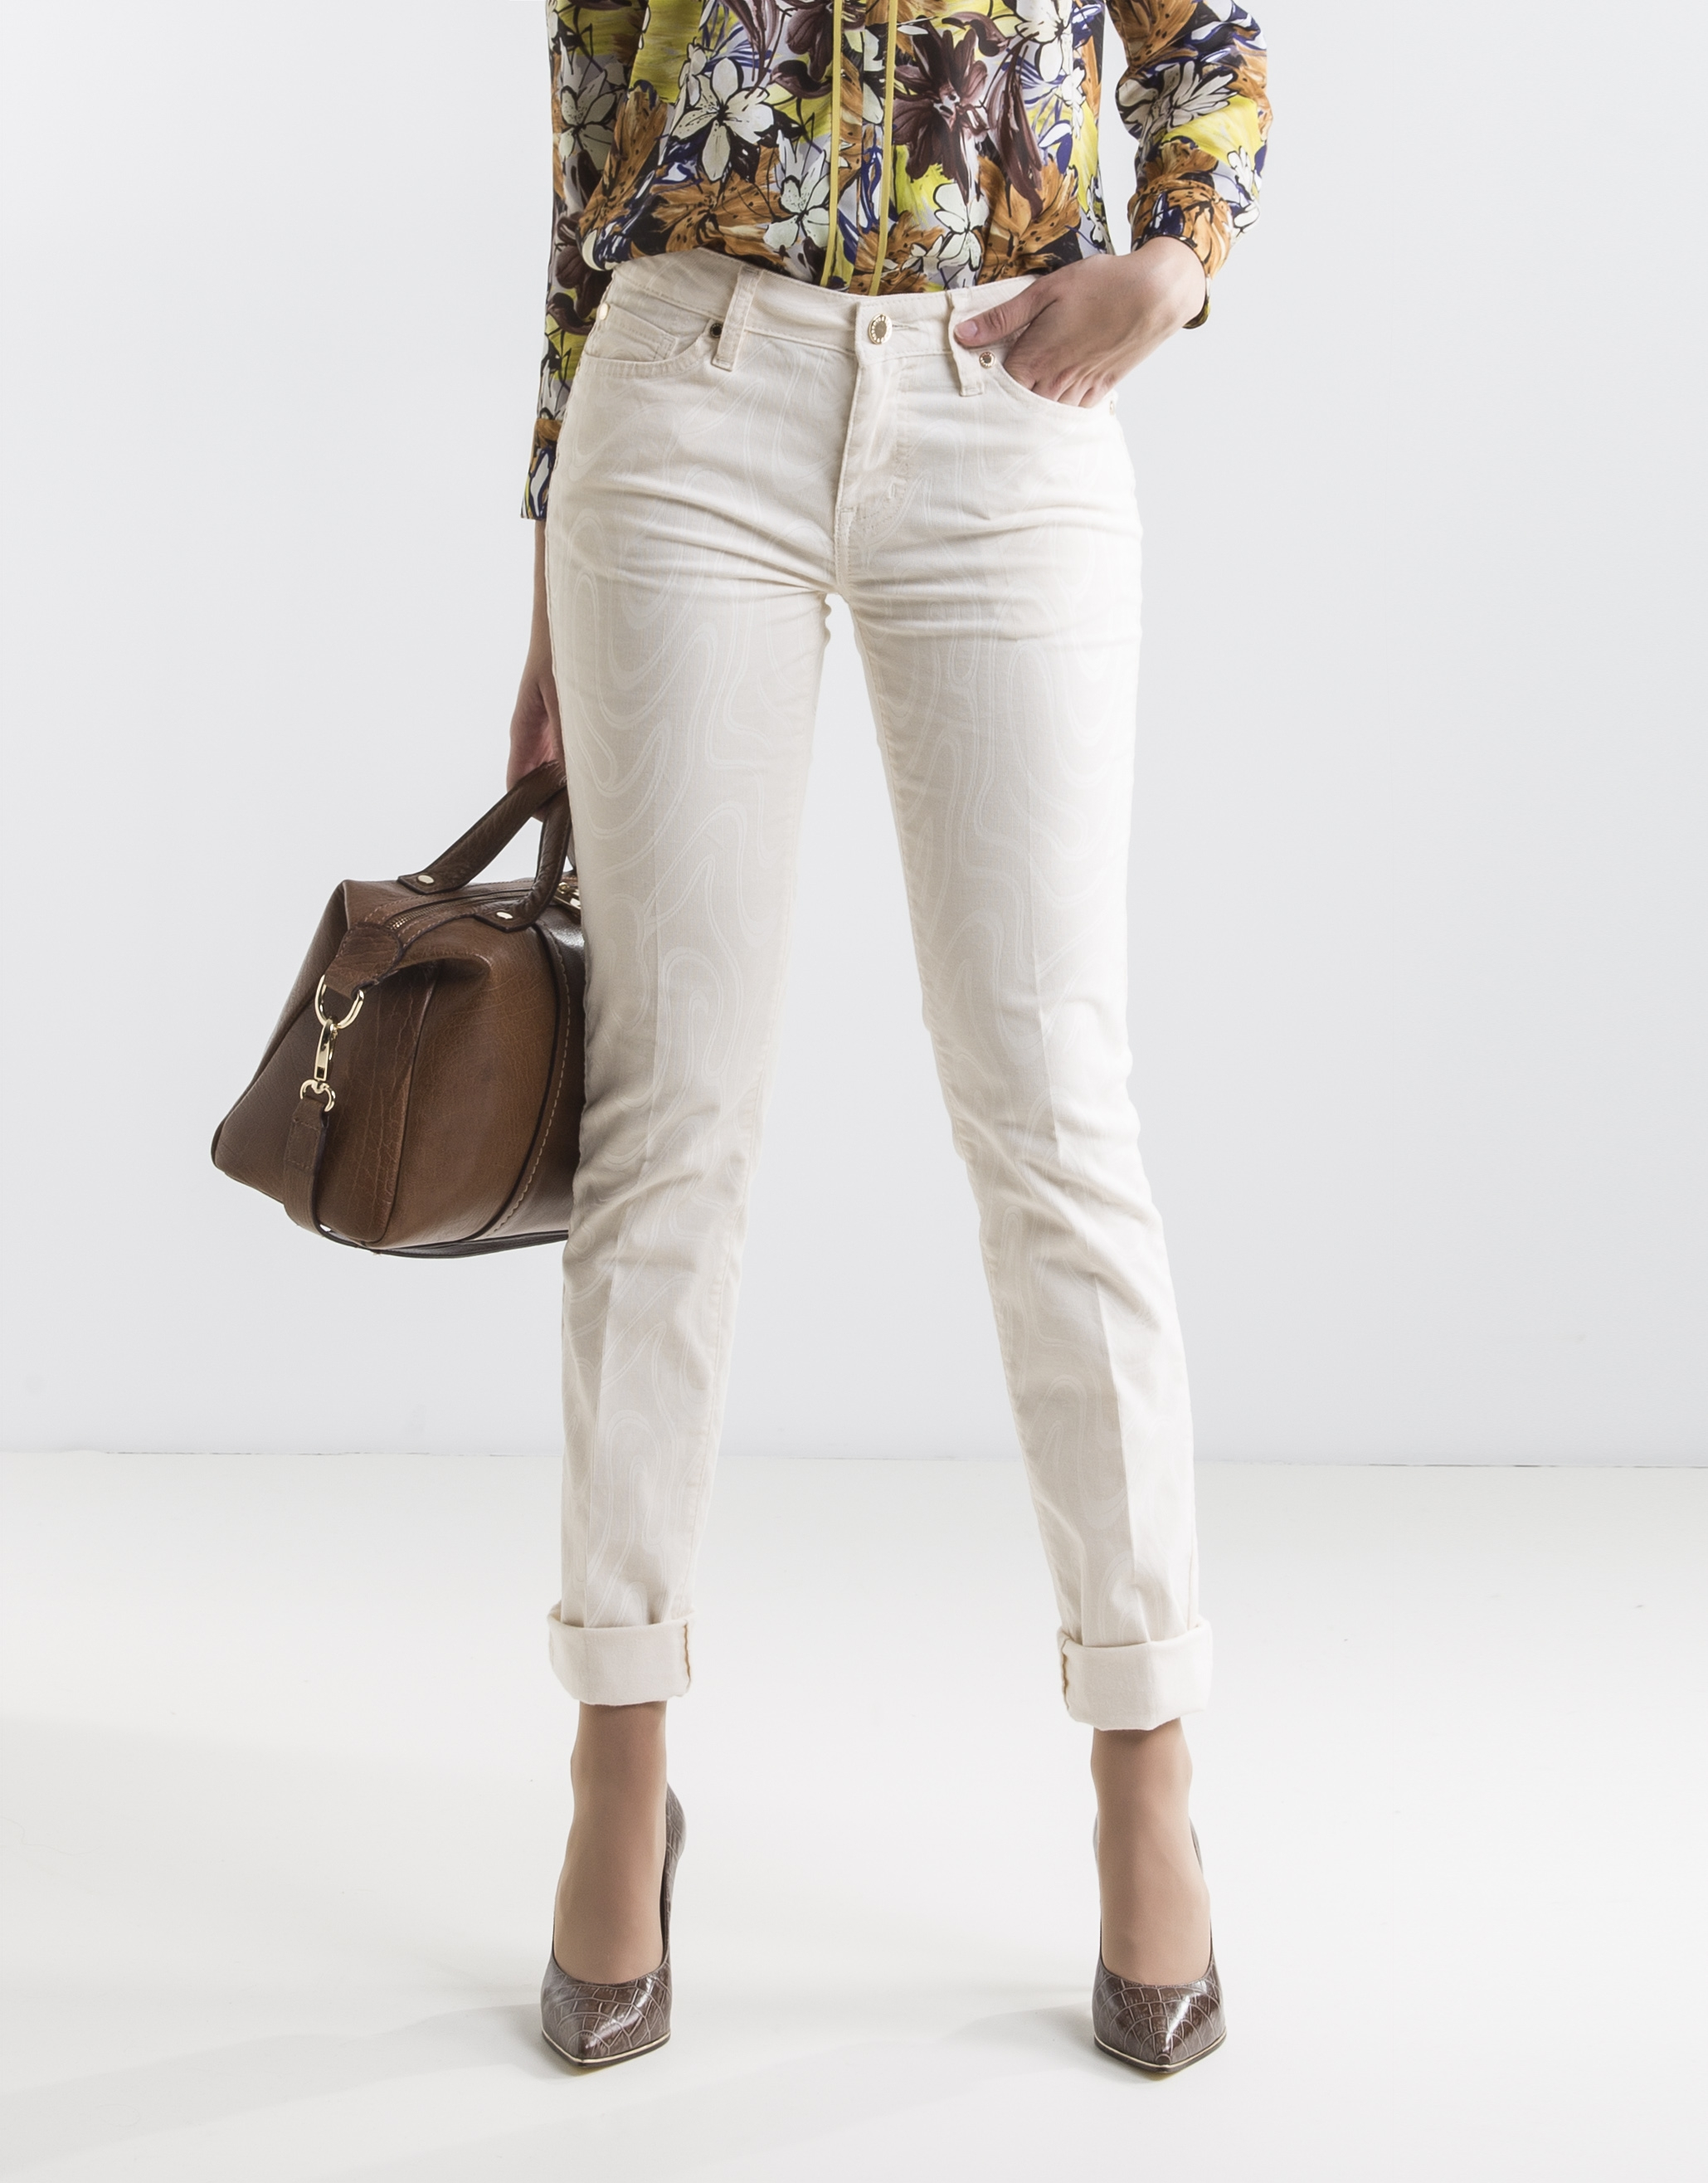 Find beige corduroy pants at ShopStyle. Shop the latest collection of beige corduroy pants from the most popular stores - all in one place.